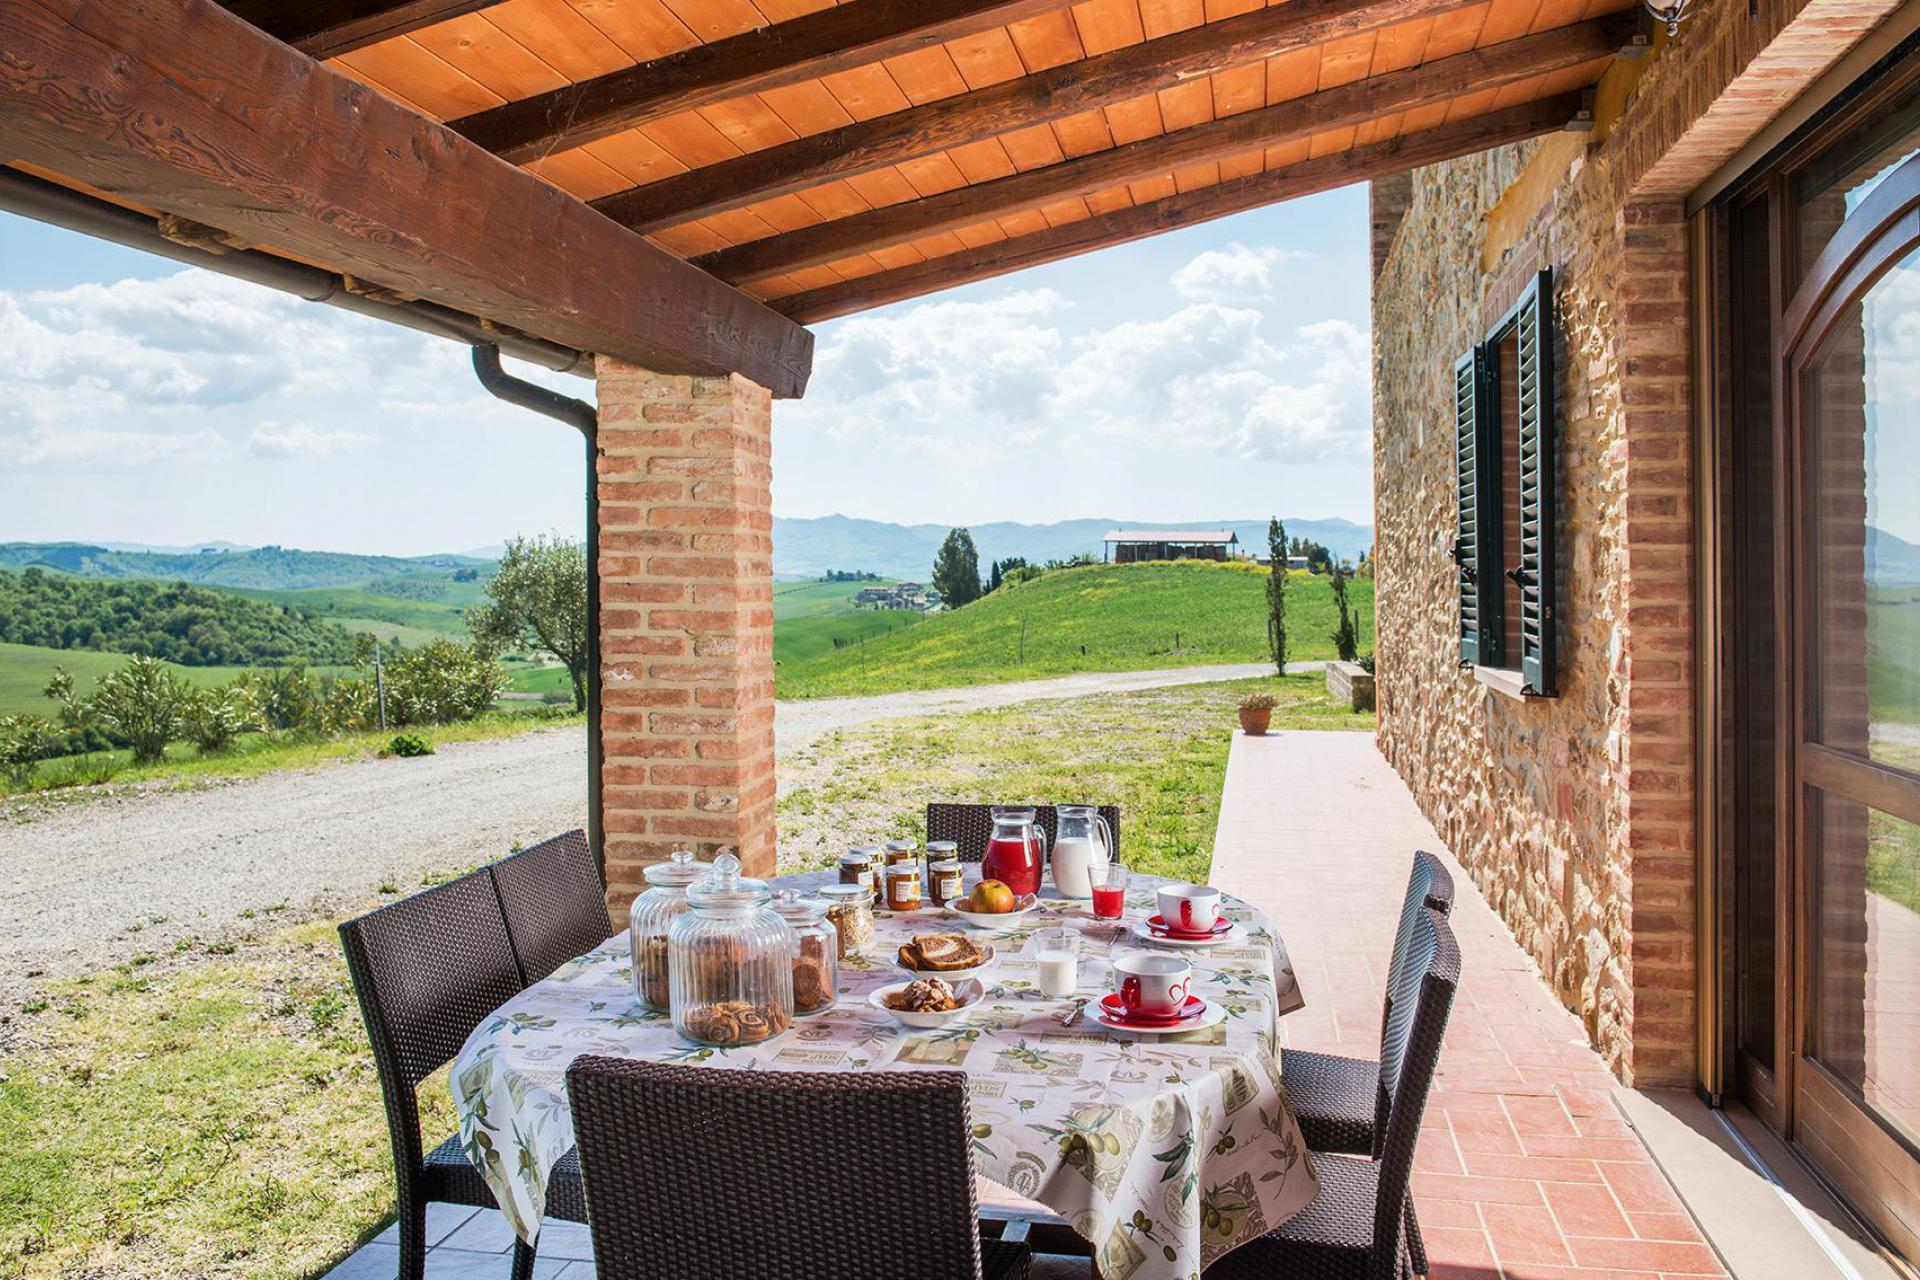 Child-friendly agriturismo with shared dinners